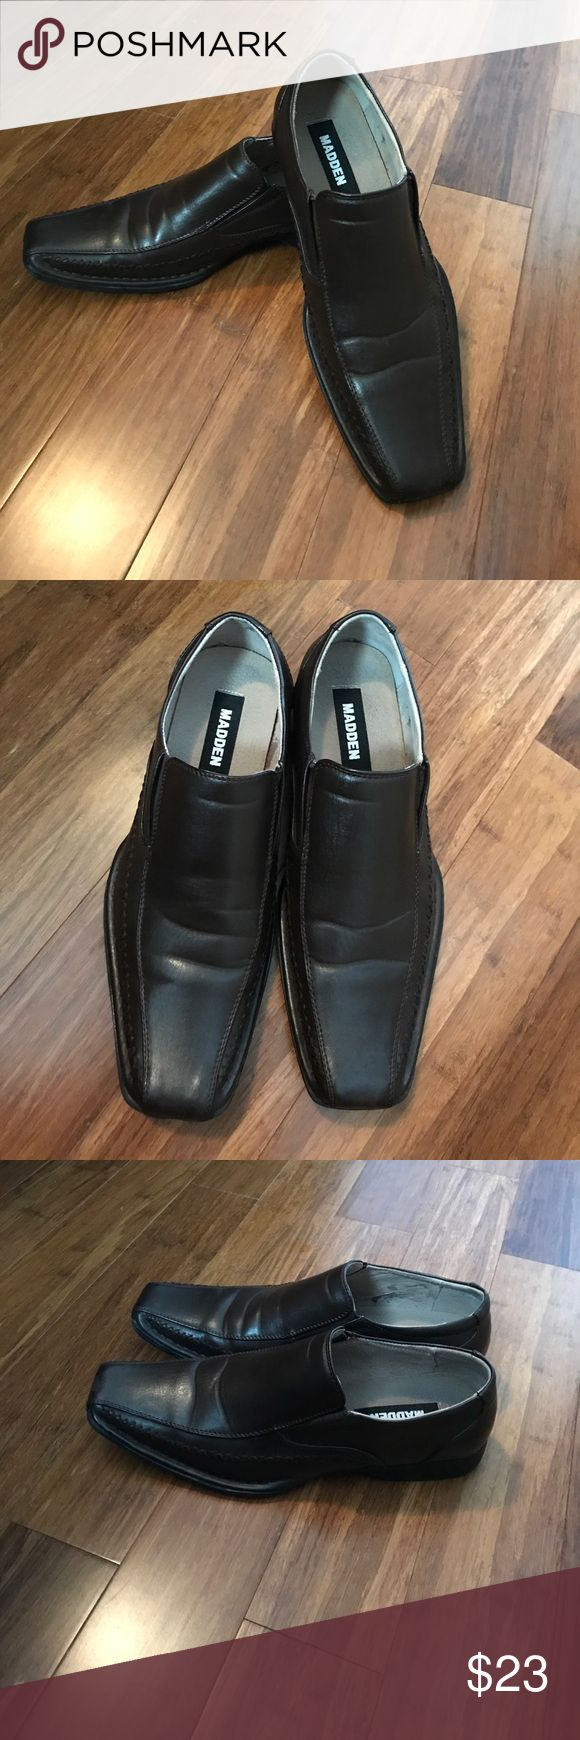 Steve Madden Loafers‼️Final Price Drop‼️ Dark Brown Loafers. Slip on wear.Polished man-made upper with exposed stitch detail.Leather lining.Lightly cushioned man-made footbed.Man-made sole. Small scratch, not noticeable. Steve Madden Shoes Loafers & Slip-Ons